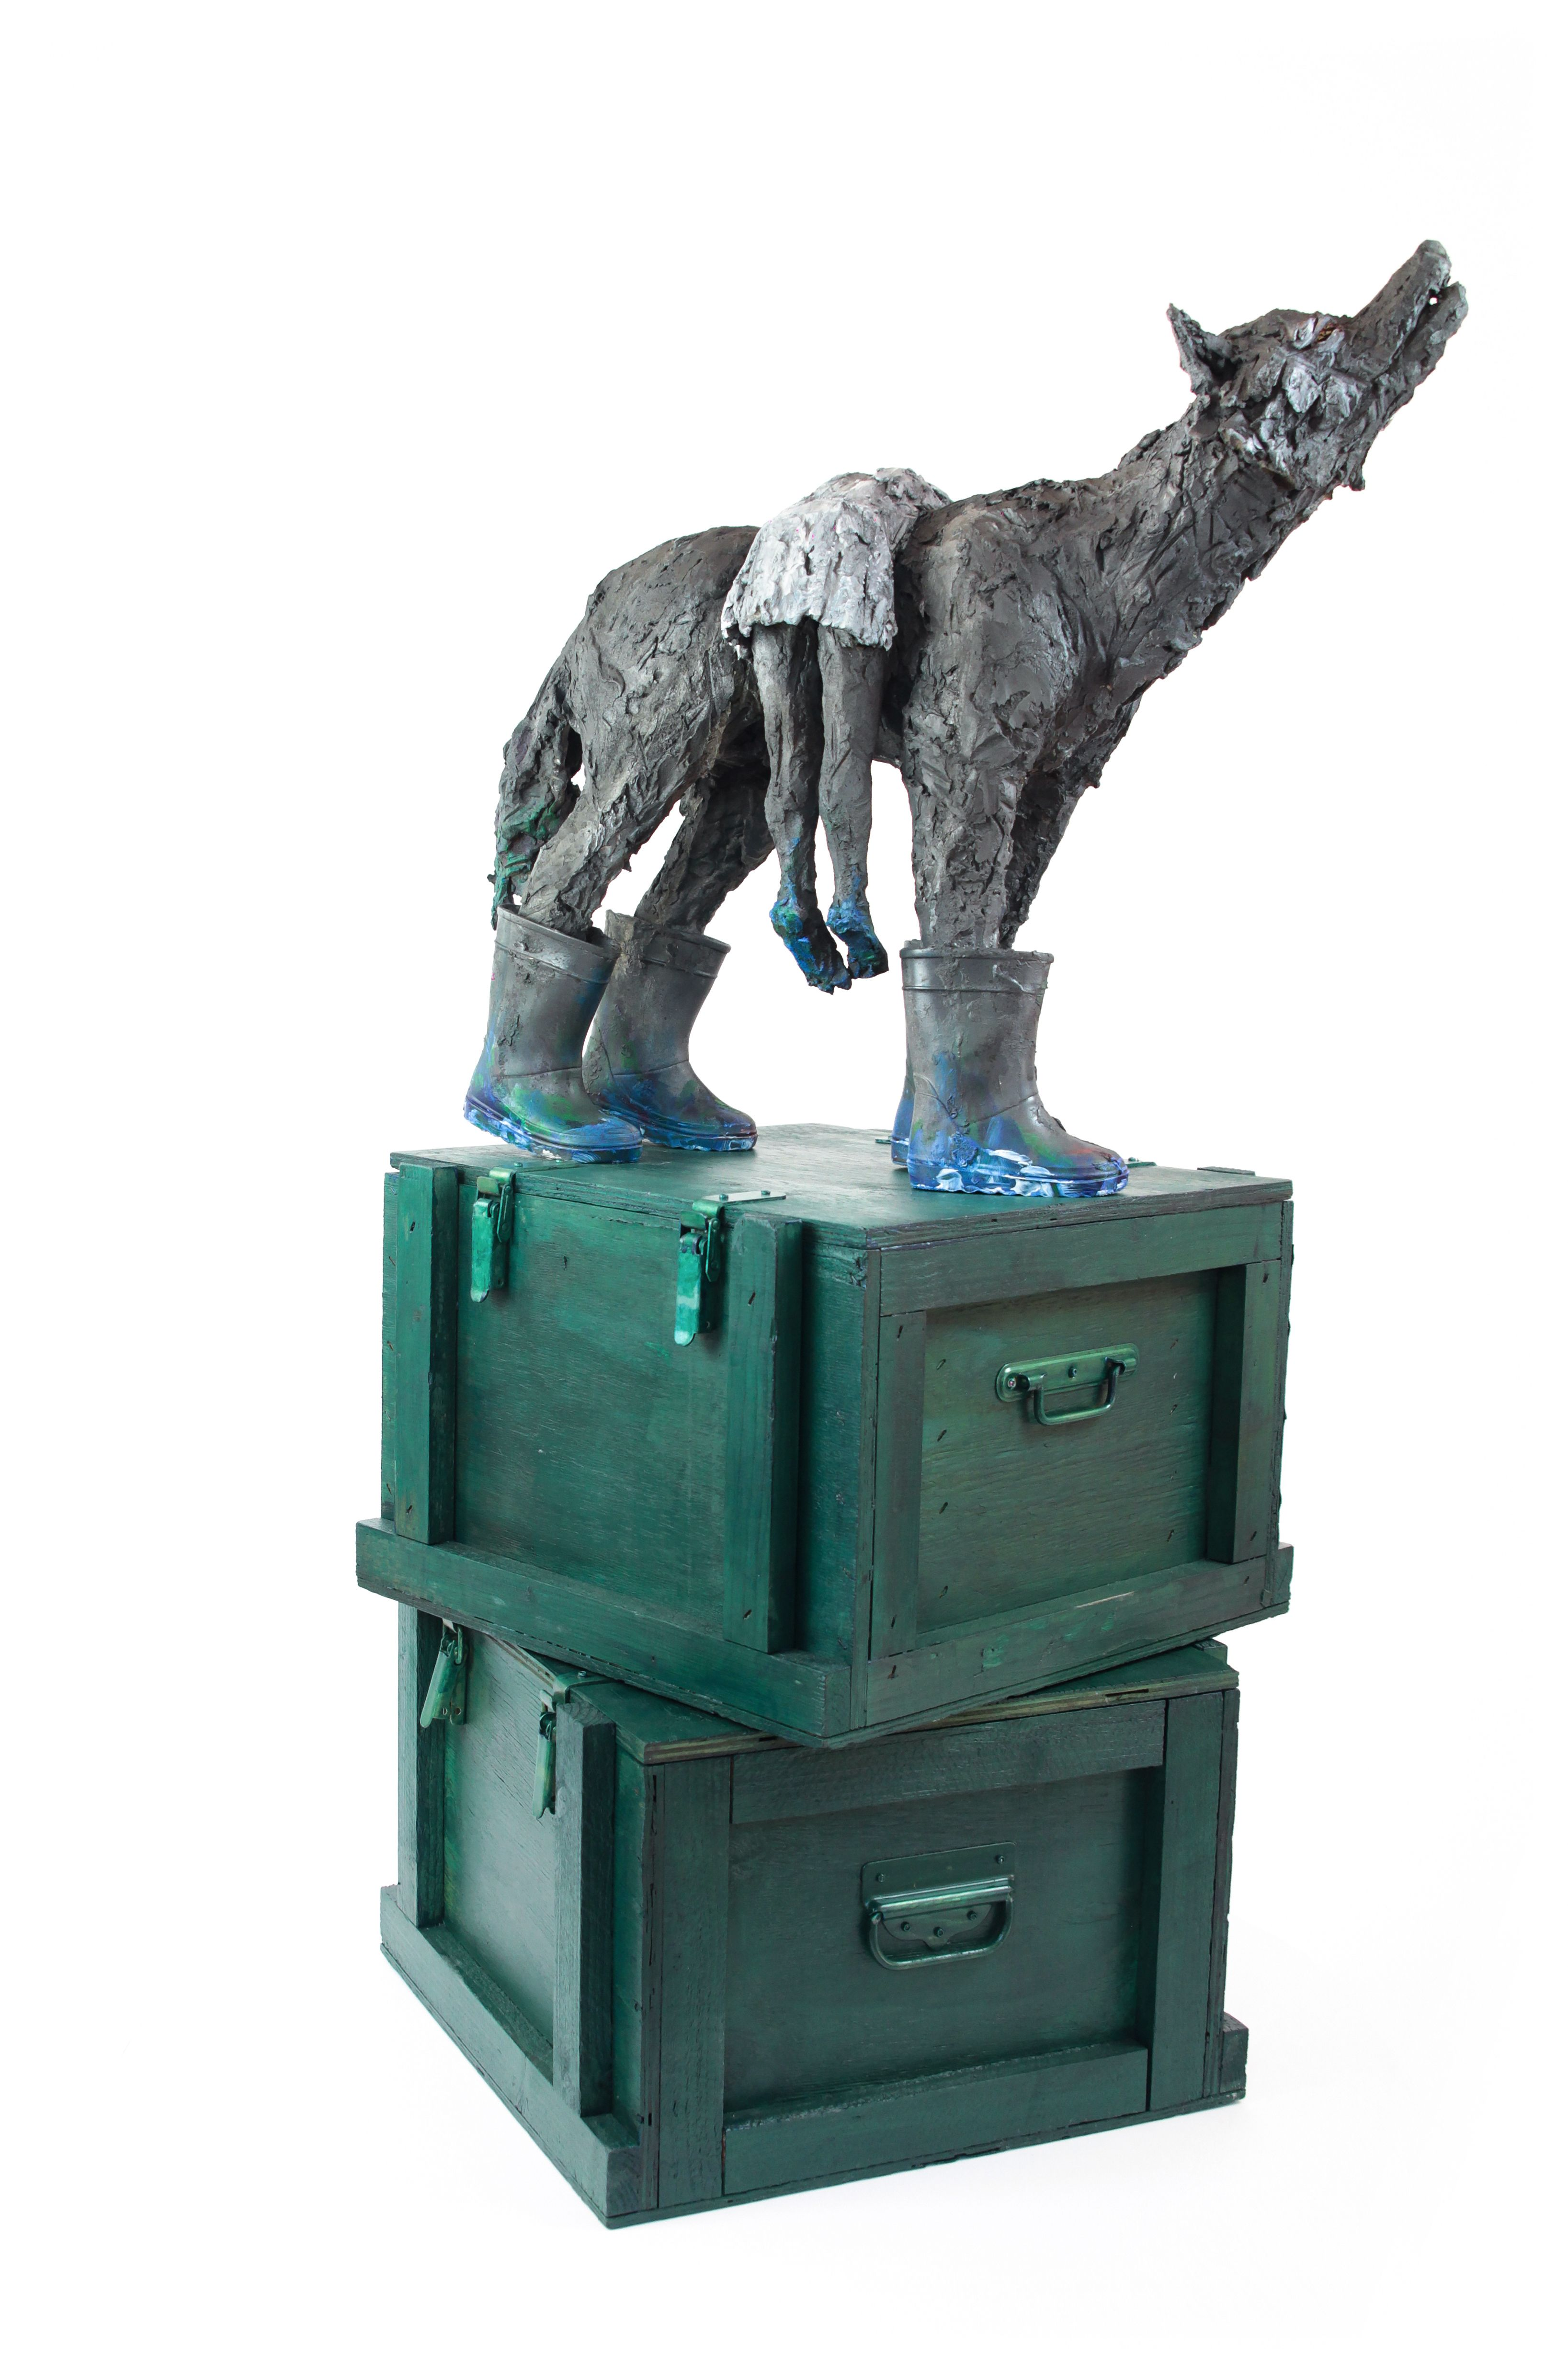 What's up, you say nothing ? - Cécile Raynal - Sculpture